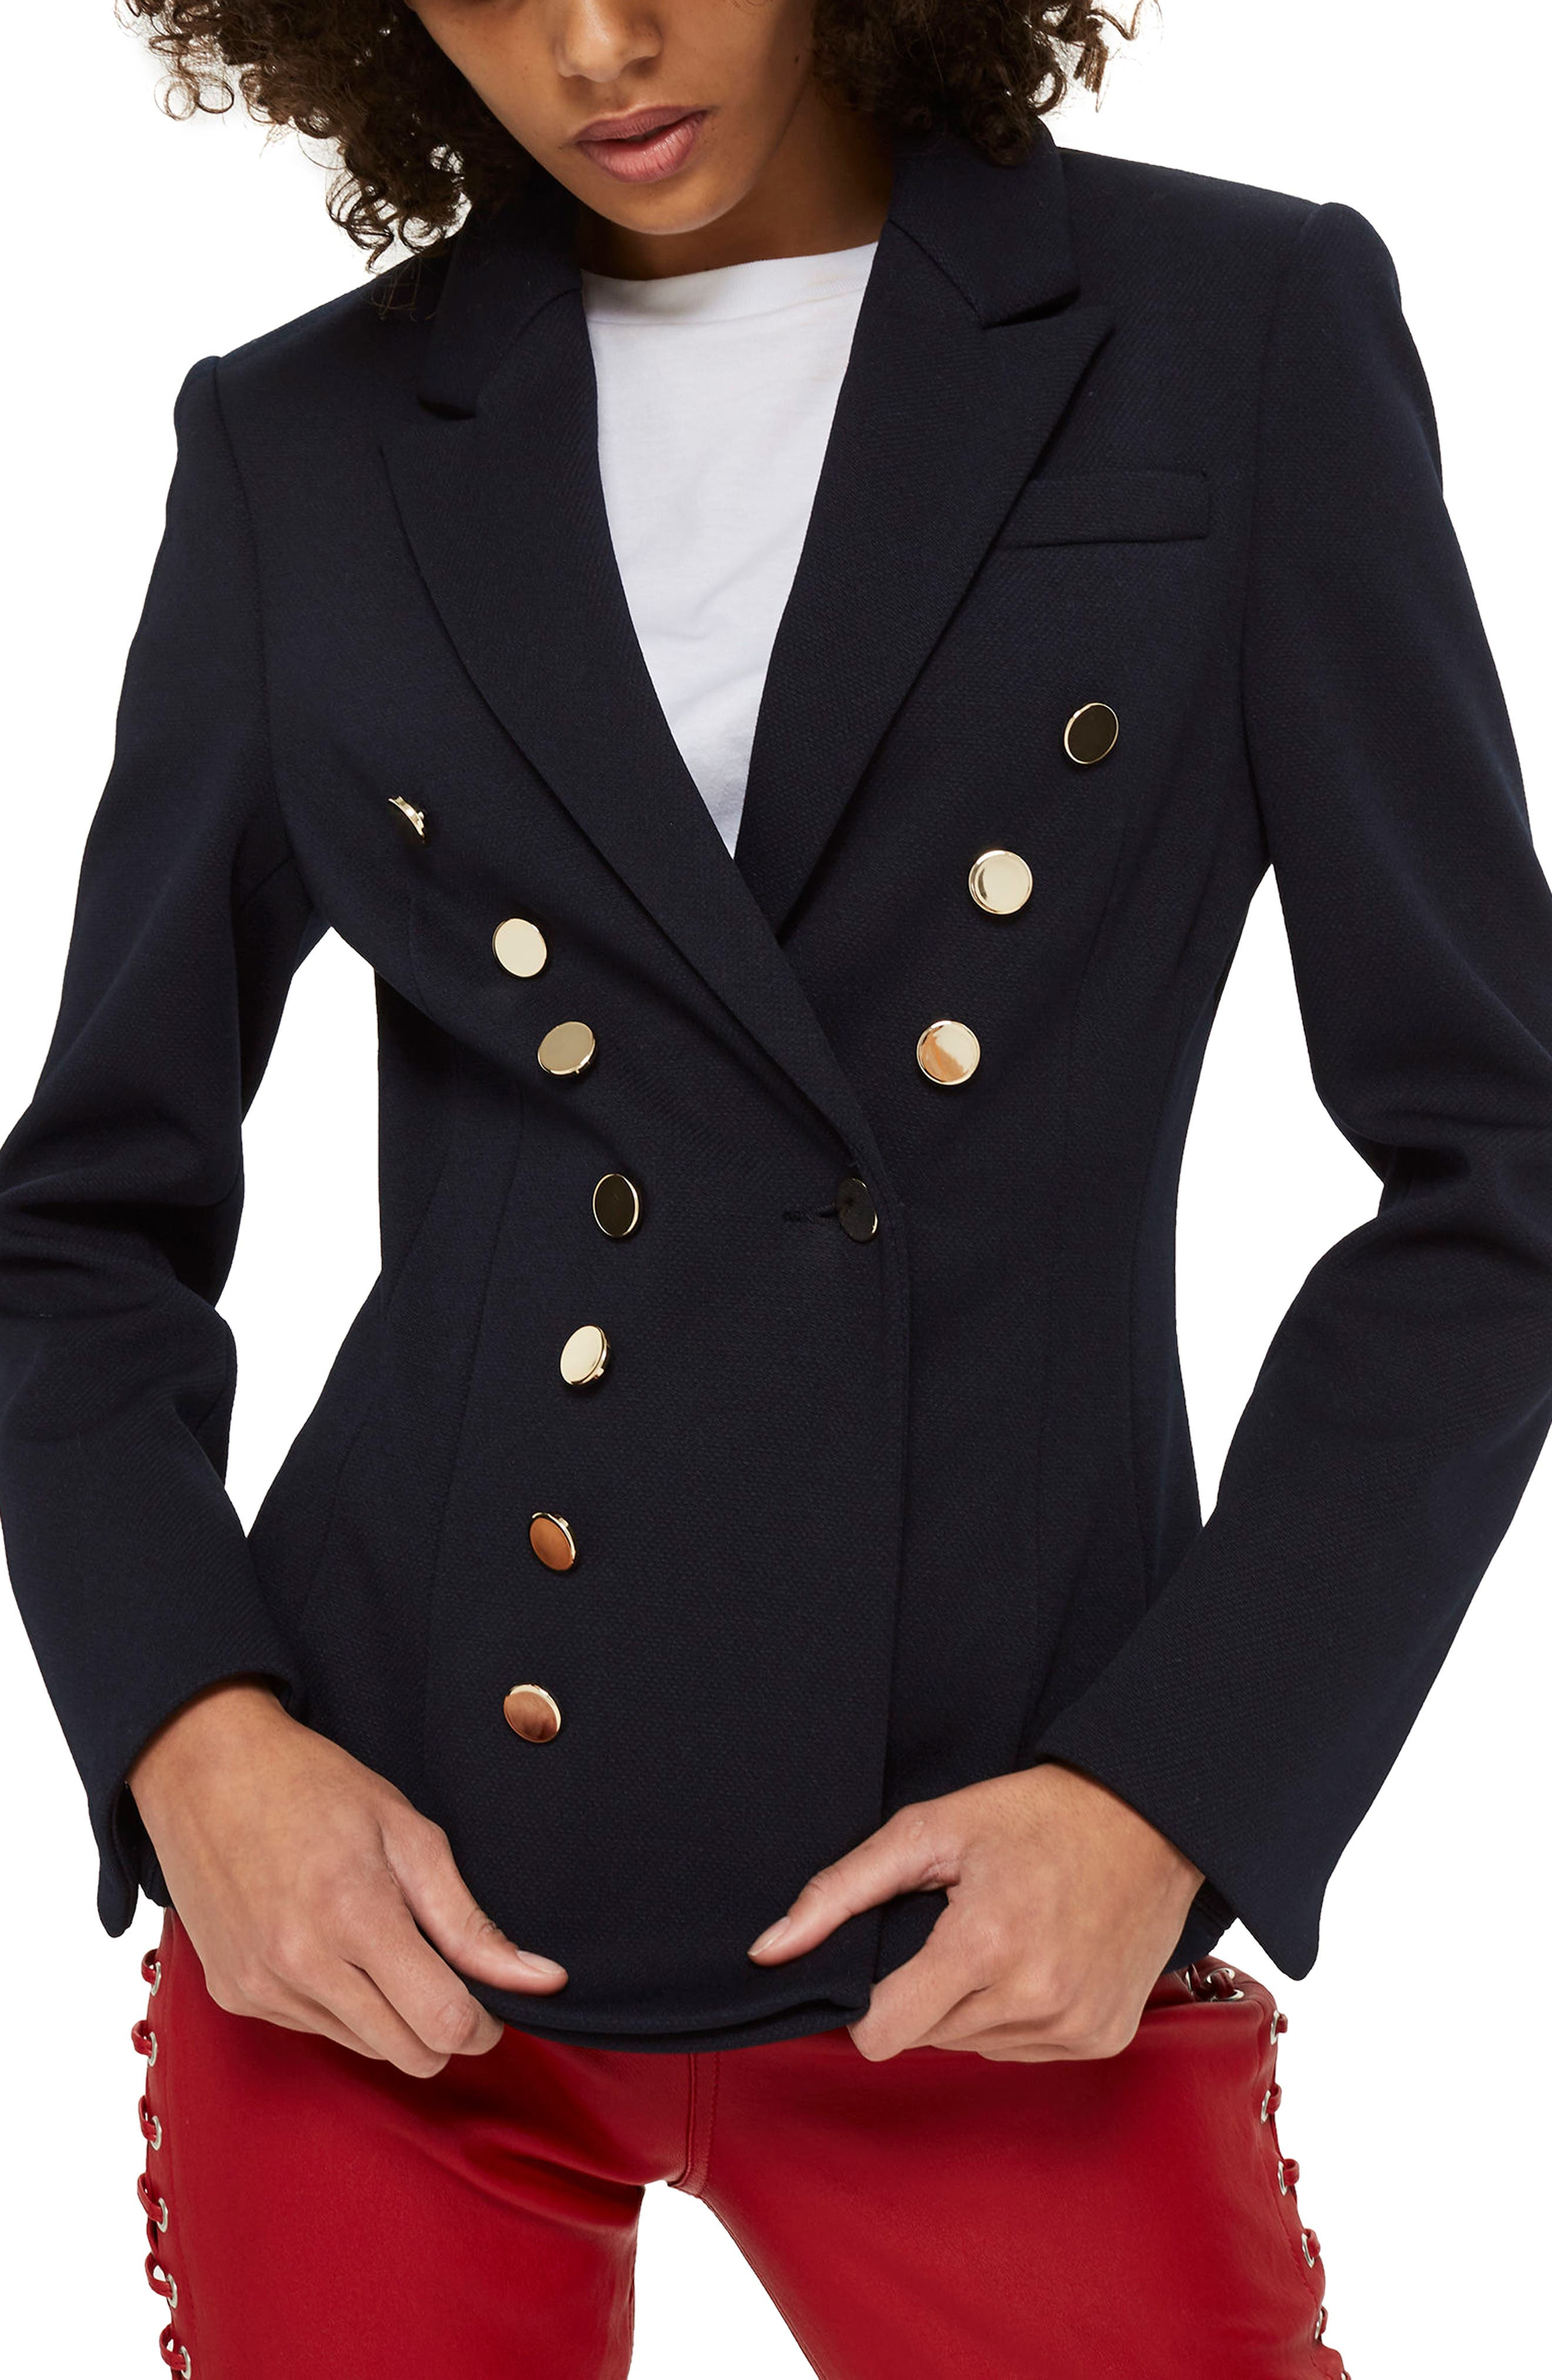 Topshop Golden Button Double Breasted Jacket